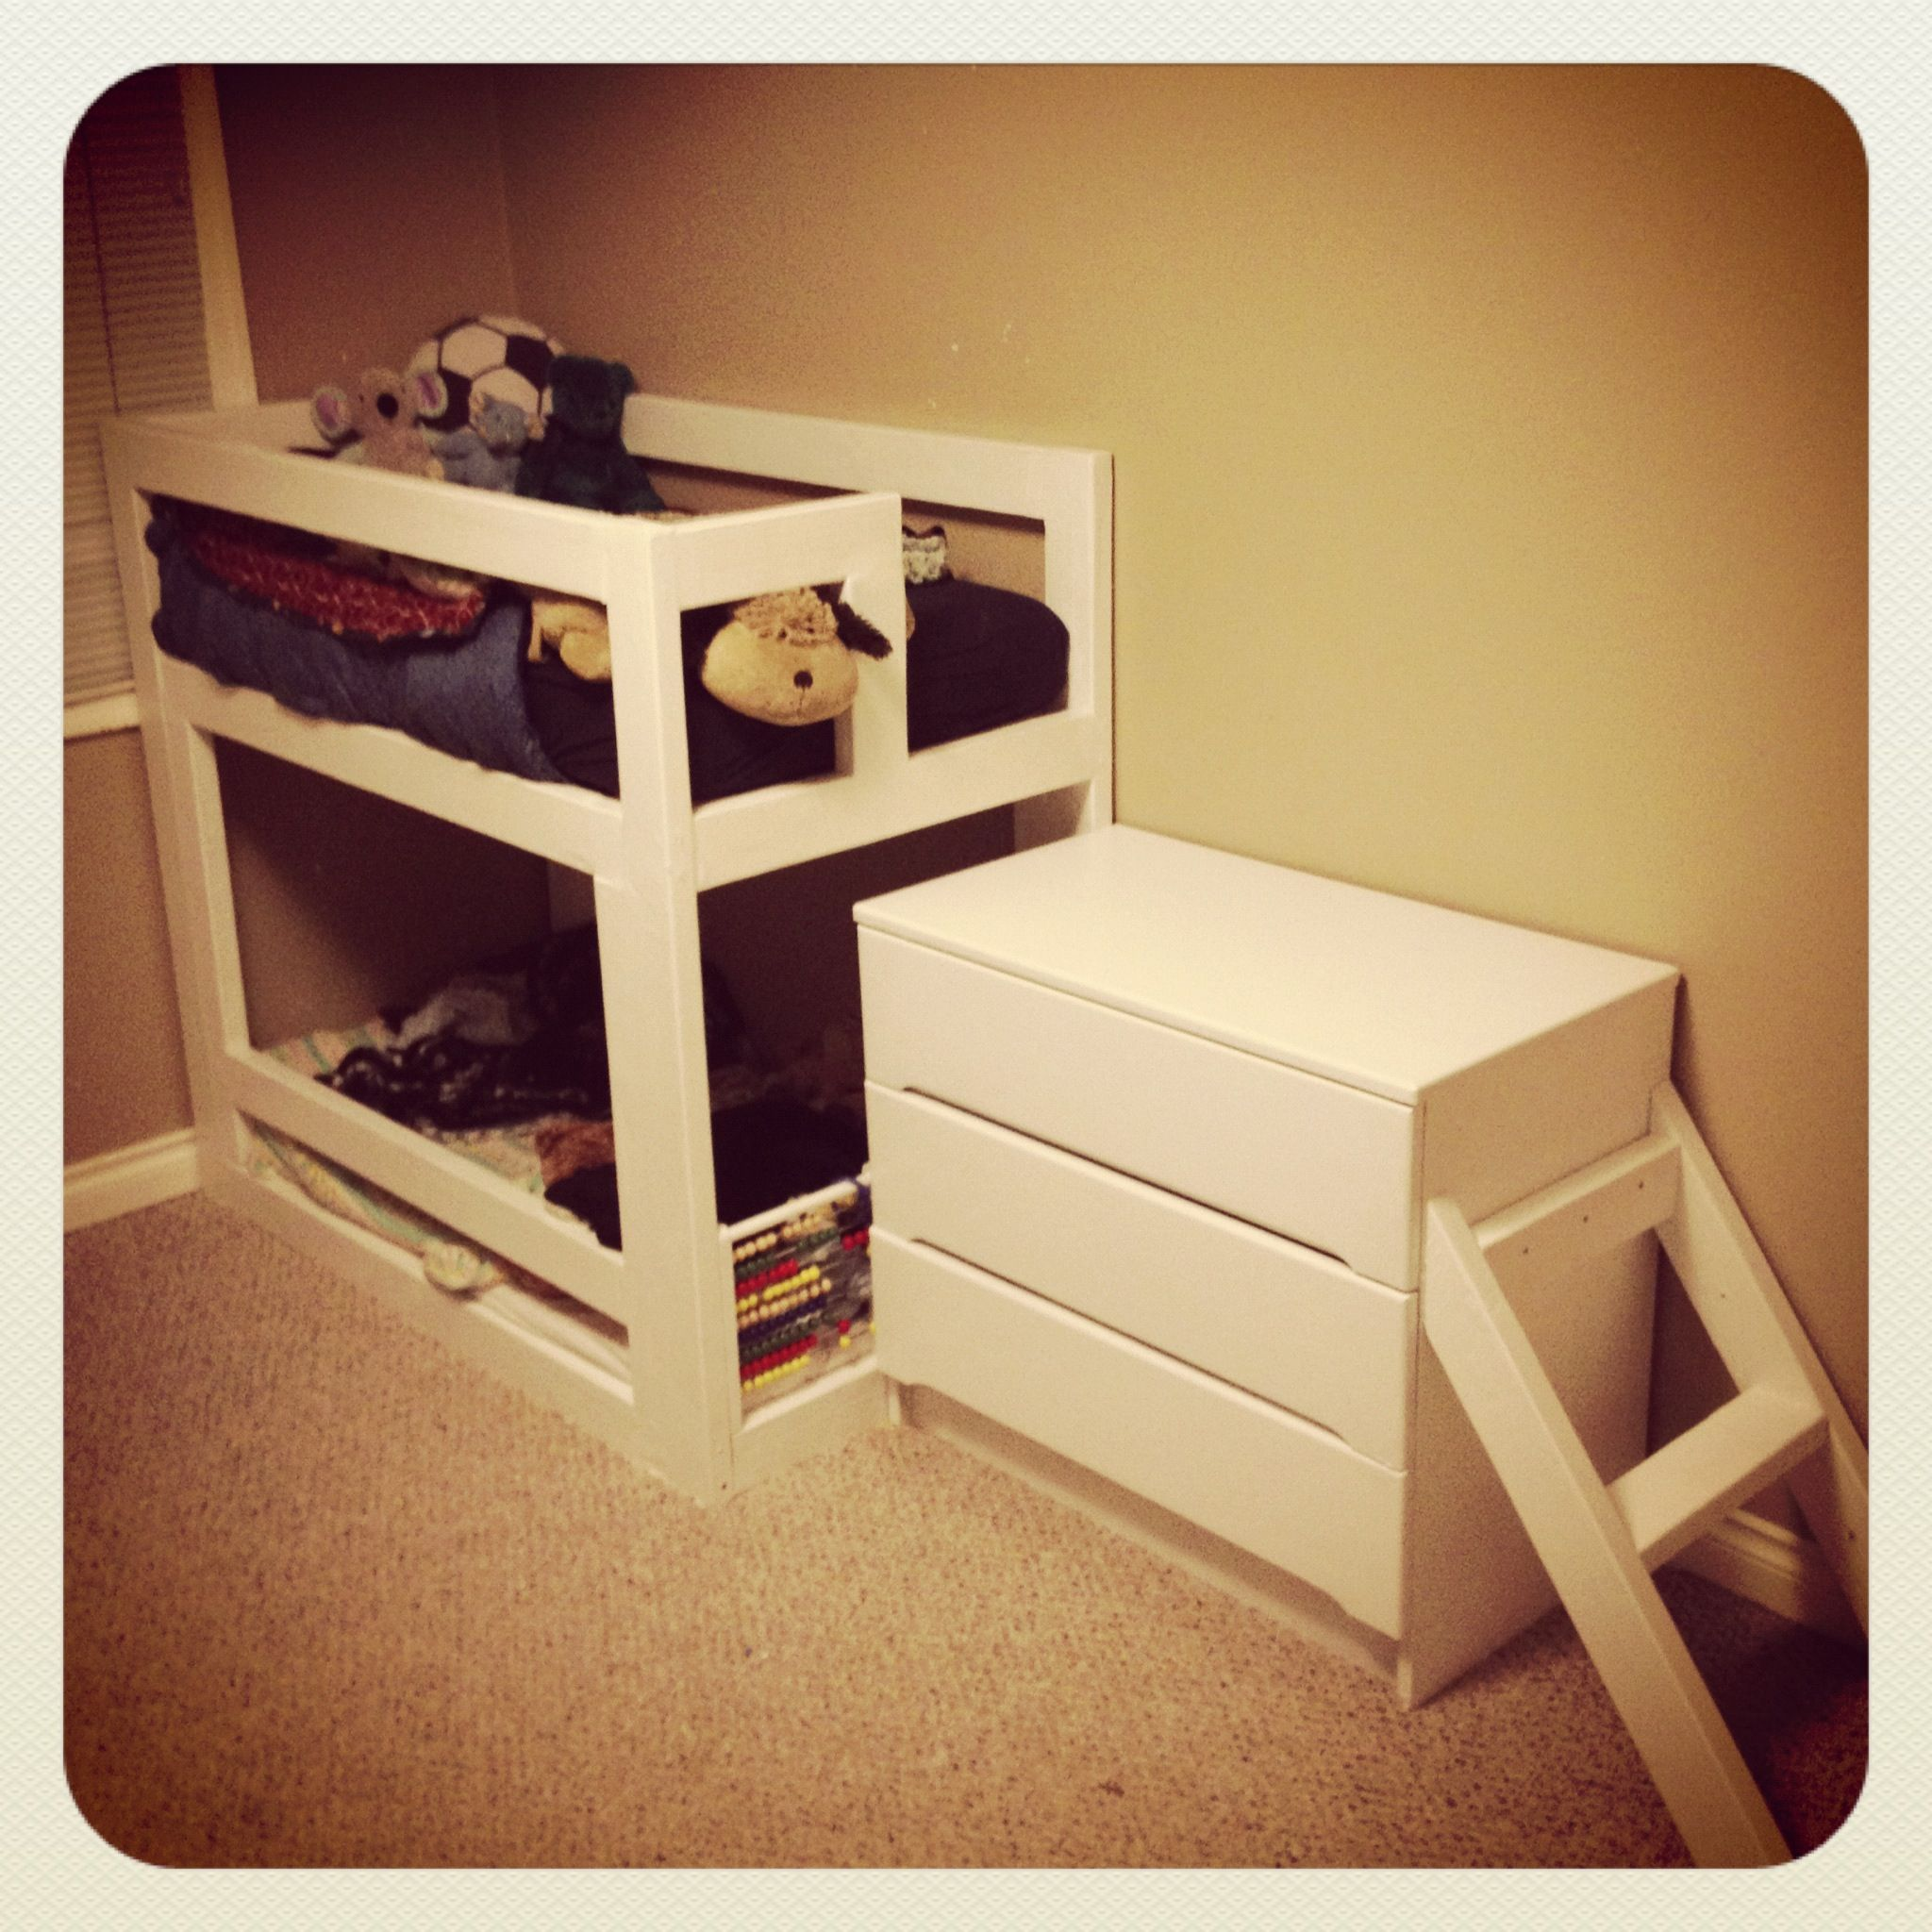 Crib mattress BunkBed. 2x4x8 (7) 2x3x8 (1) Repurposed Dresser Screws ...